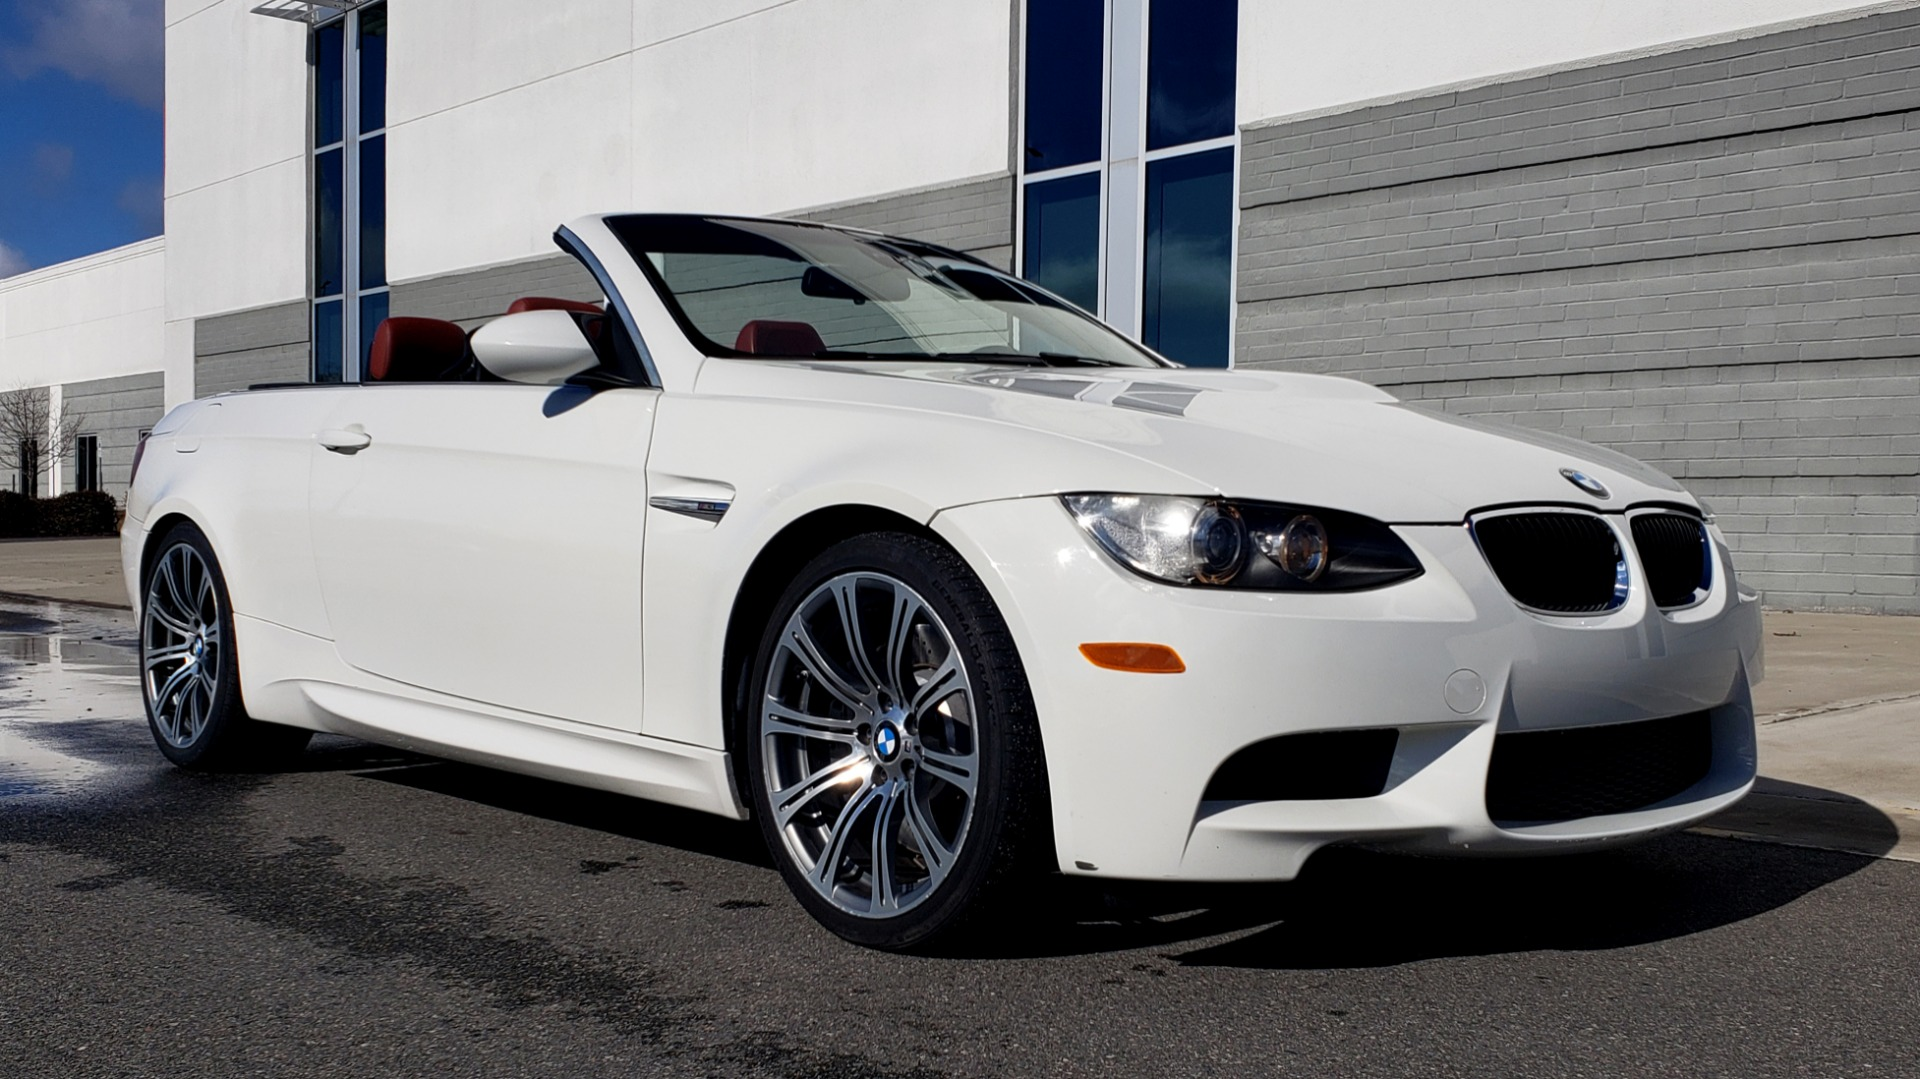 Used 2012 BMW M3 CONVERTIBLE / PREM PKG / NAV / M-DOUBLE CLUTCH AUTOMATIC for sale Sold at Formula Imports in Charlotte NC 28227 18